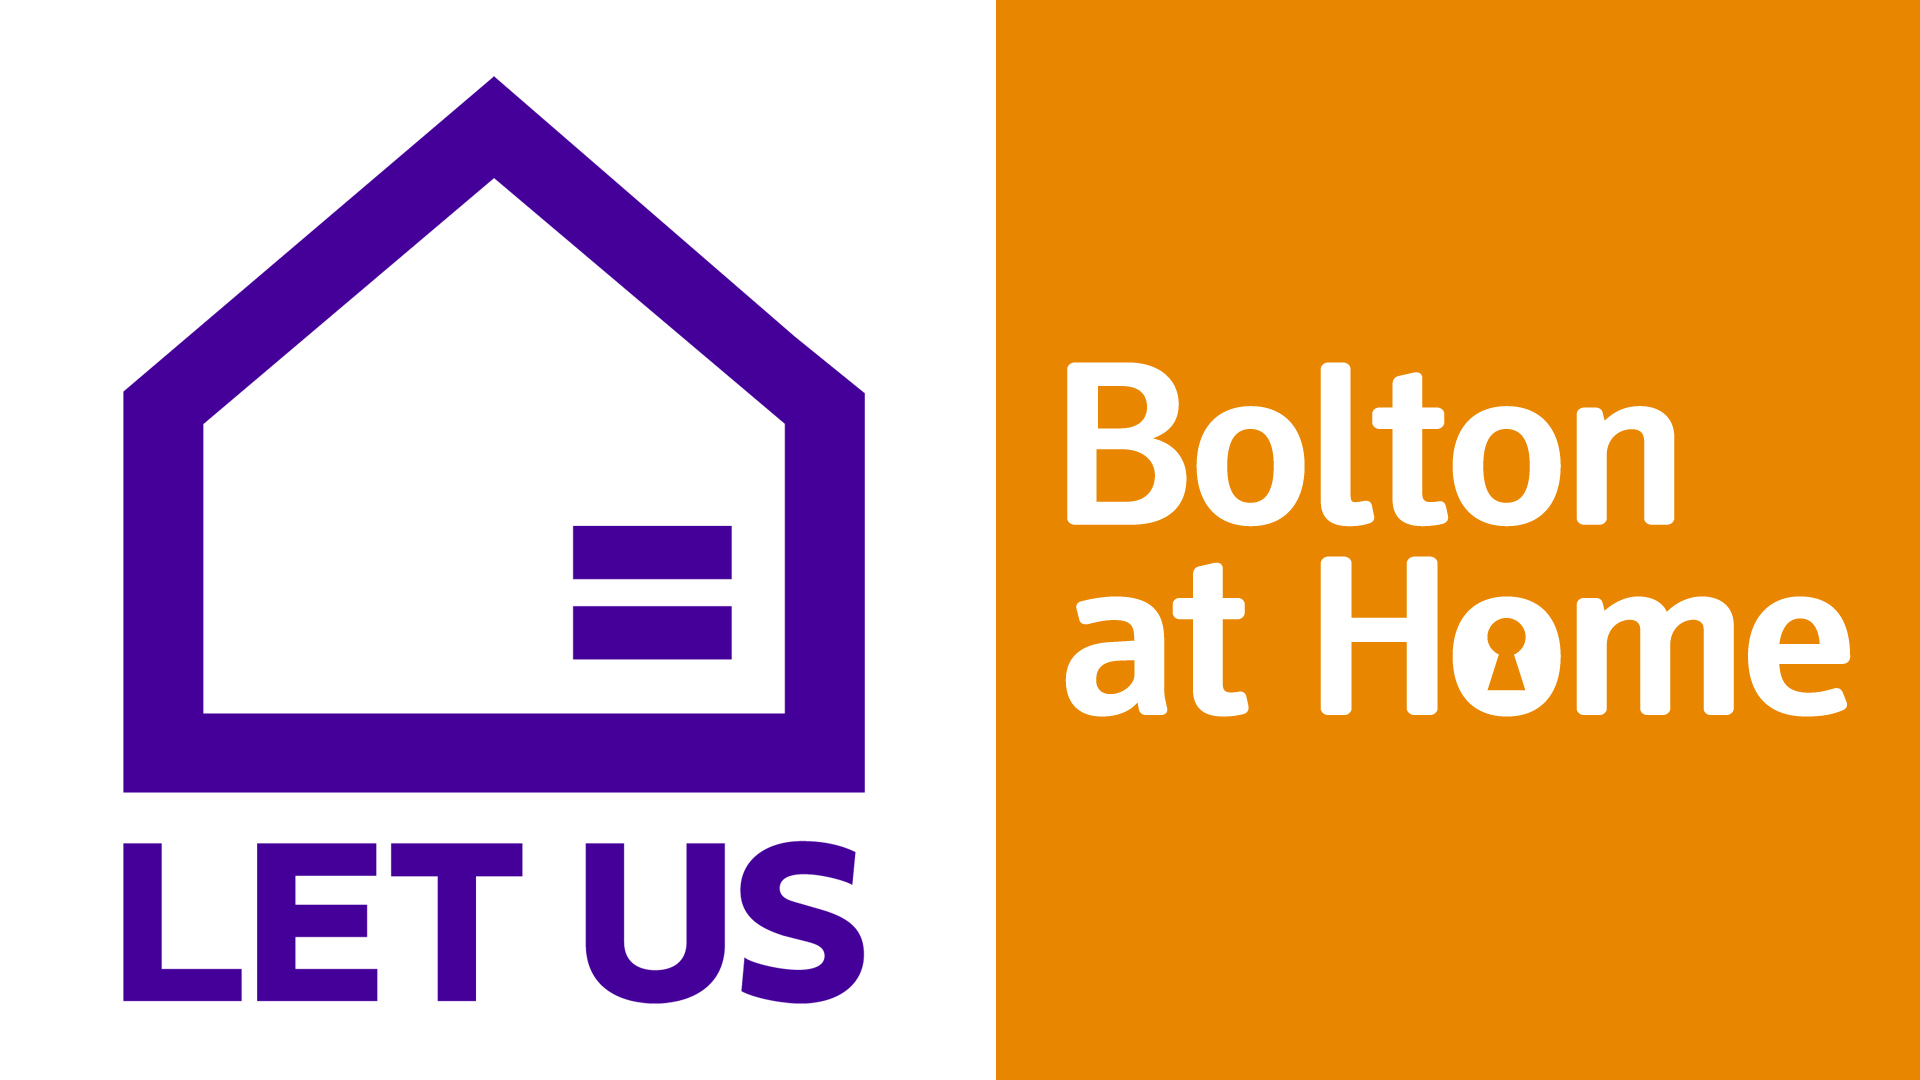 Let us and Bolton at Home logos